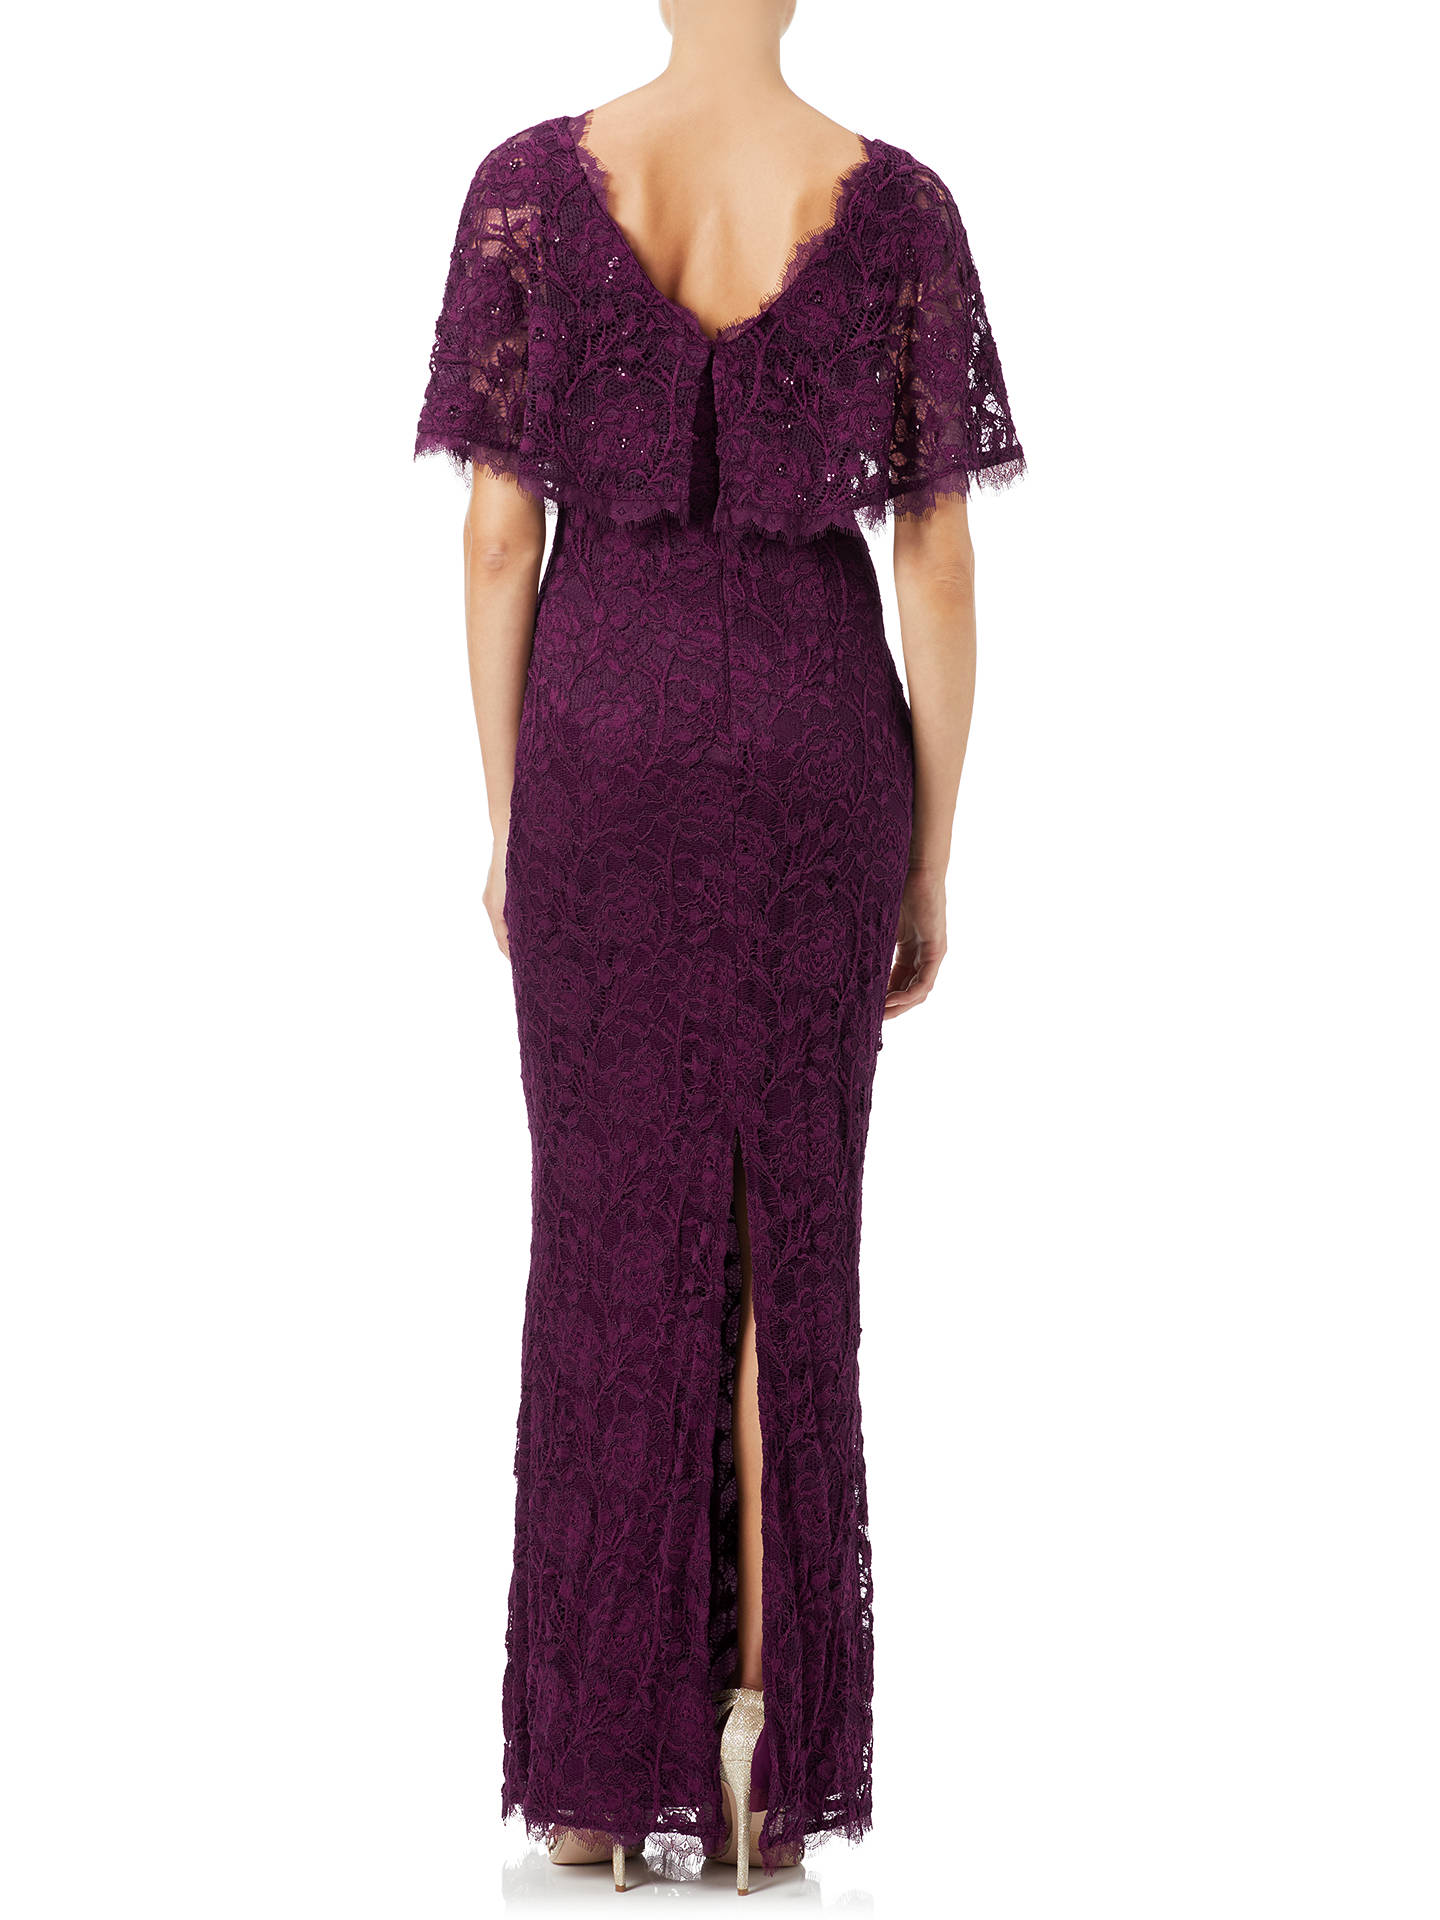 Buy Adrianna Papell Rose Lace Crepe Mermaid Gown, Mulberry, 8 Online at johnlewis.com